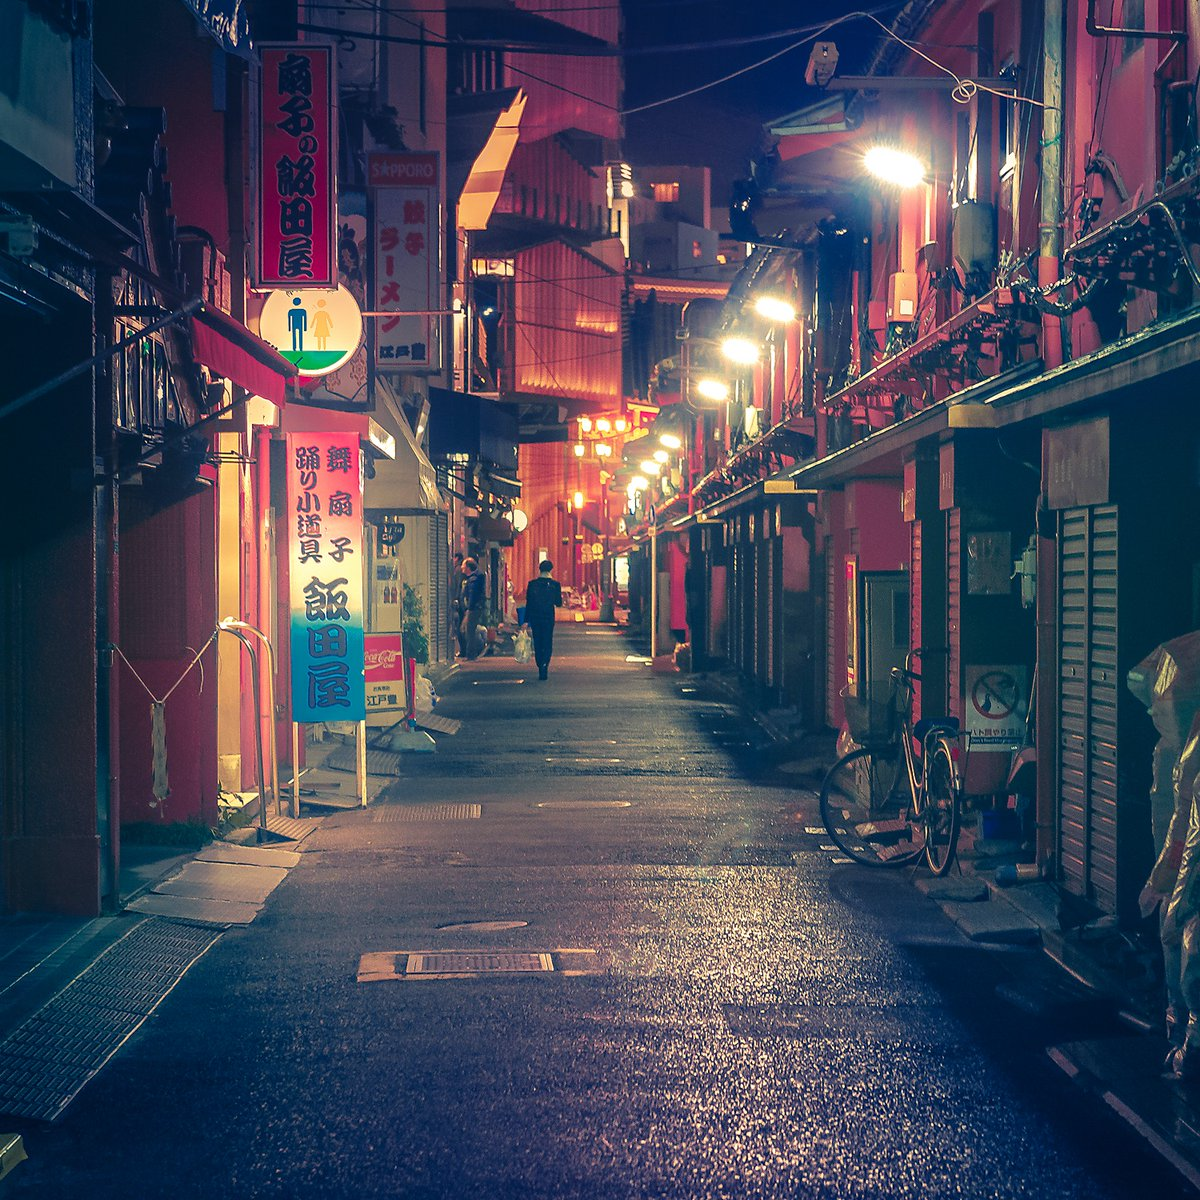 Path. Location: #tokyo #japan. Part of my Dream World #photography #night series pic.twitter.com/8LHIUblYop